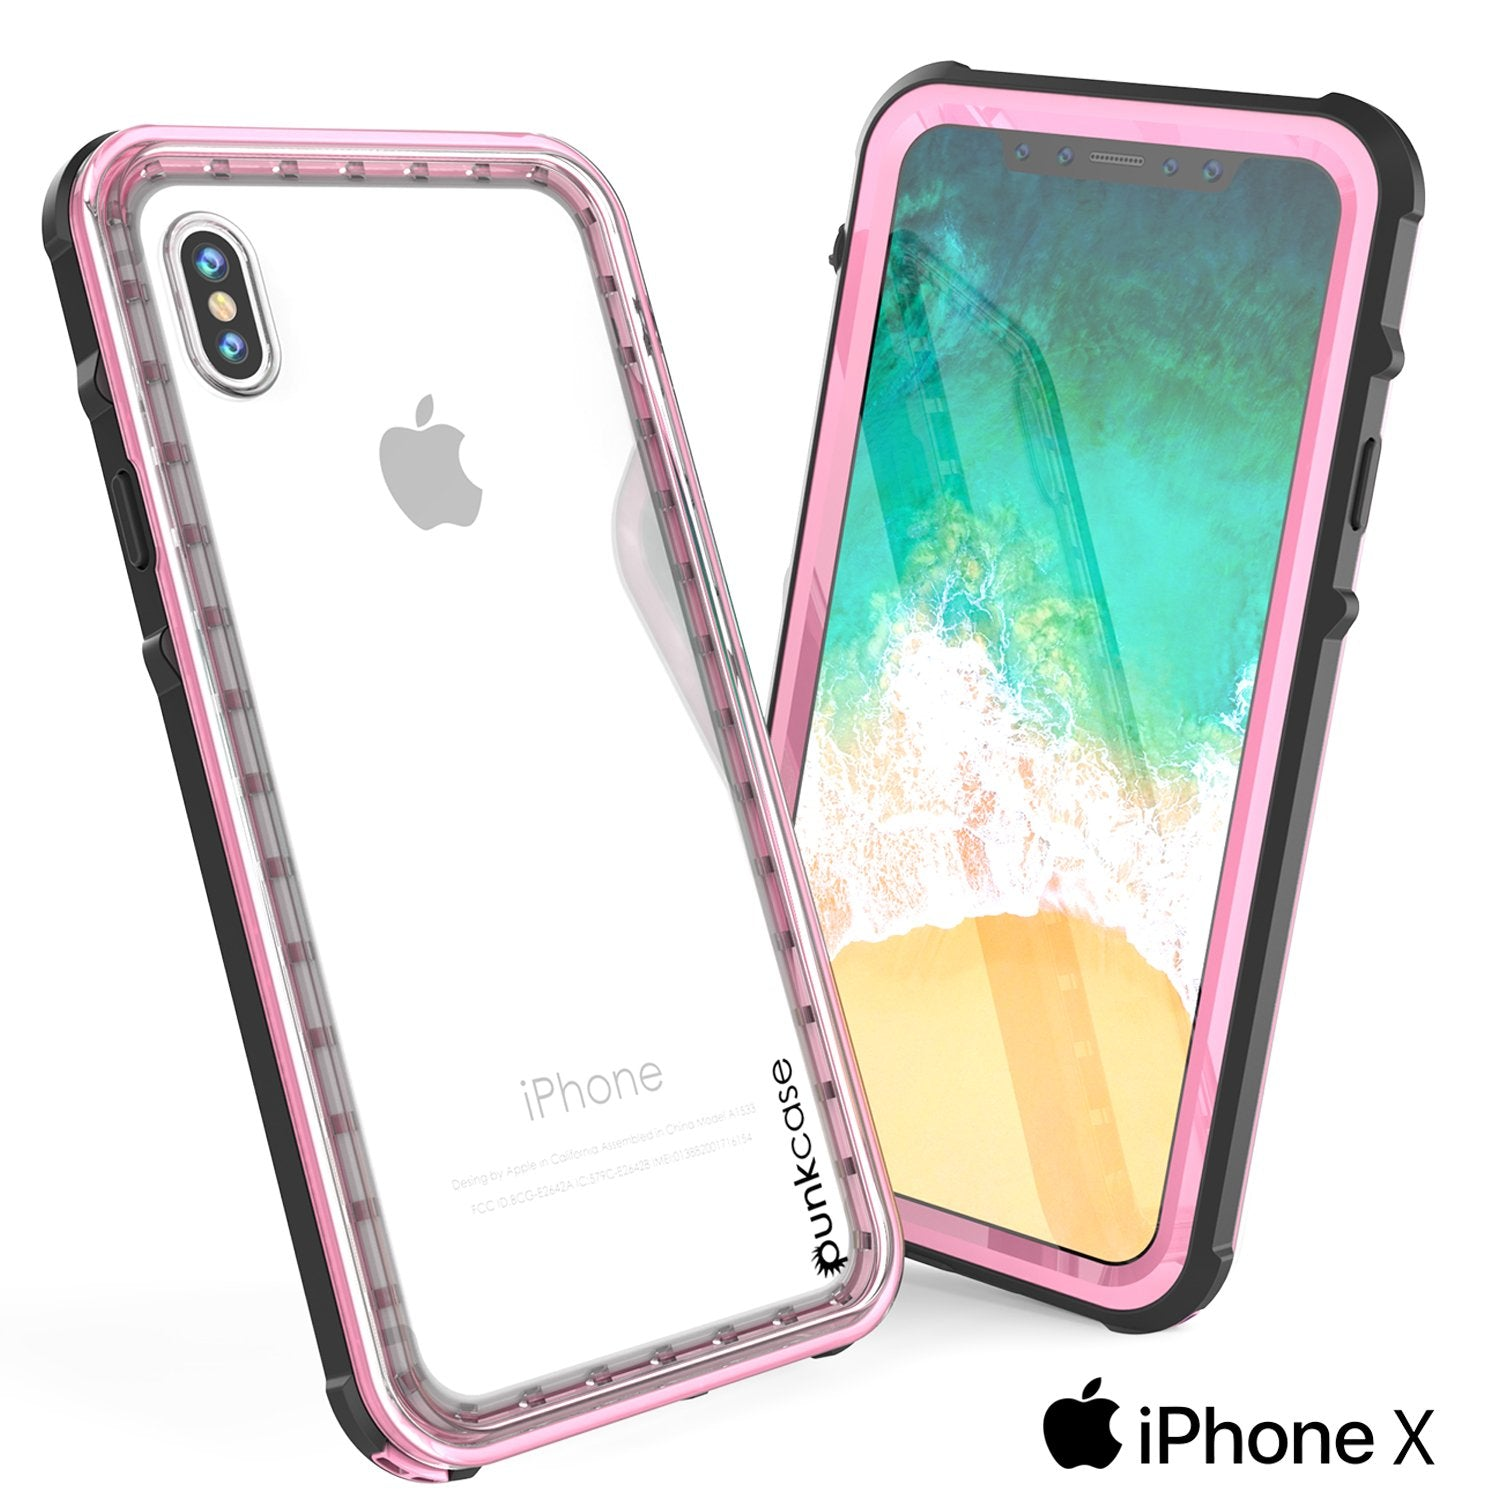 iPhone X Punkcase CRYSTAL SERIES Cover W/Screen Protector, Pink